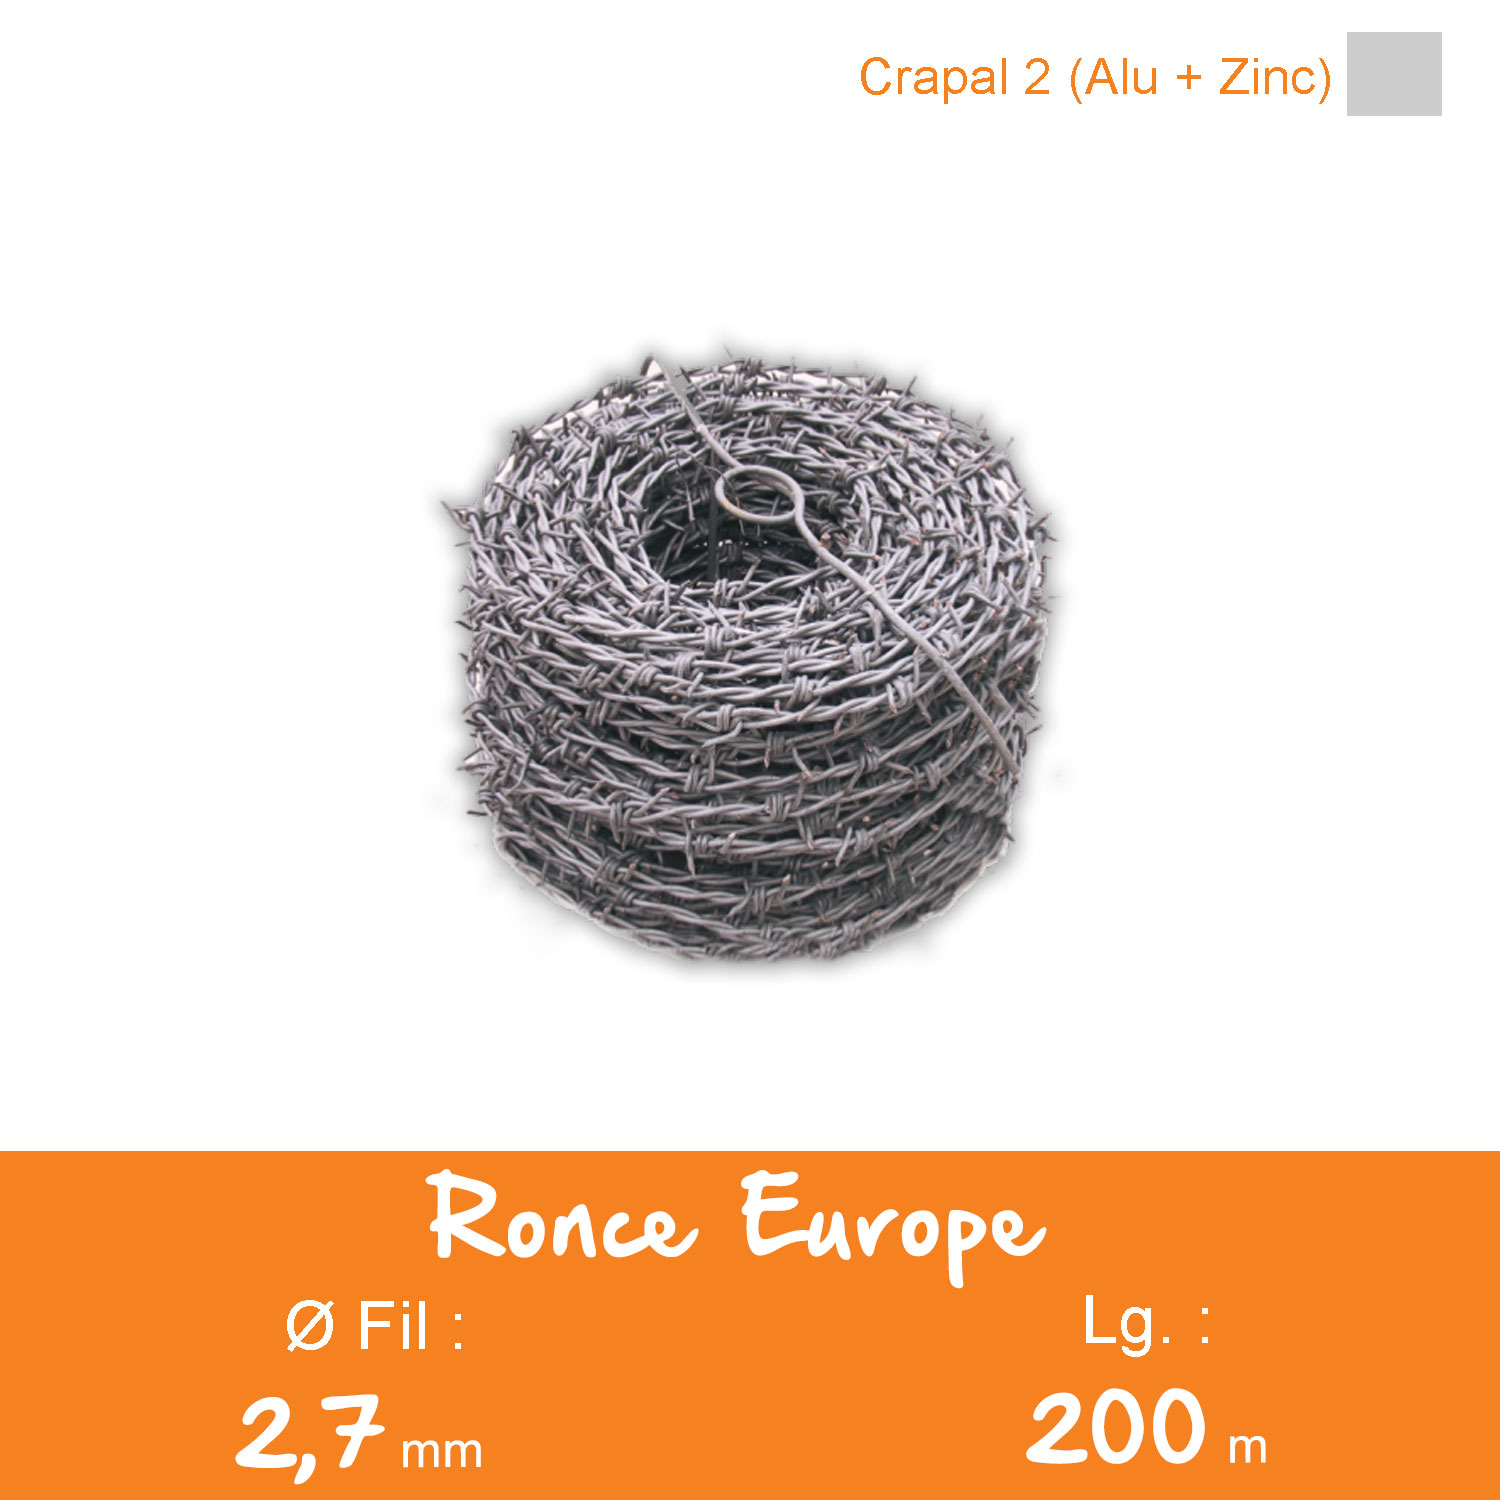 Ronce Europe Crapal 2